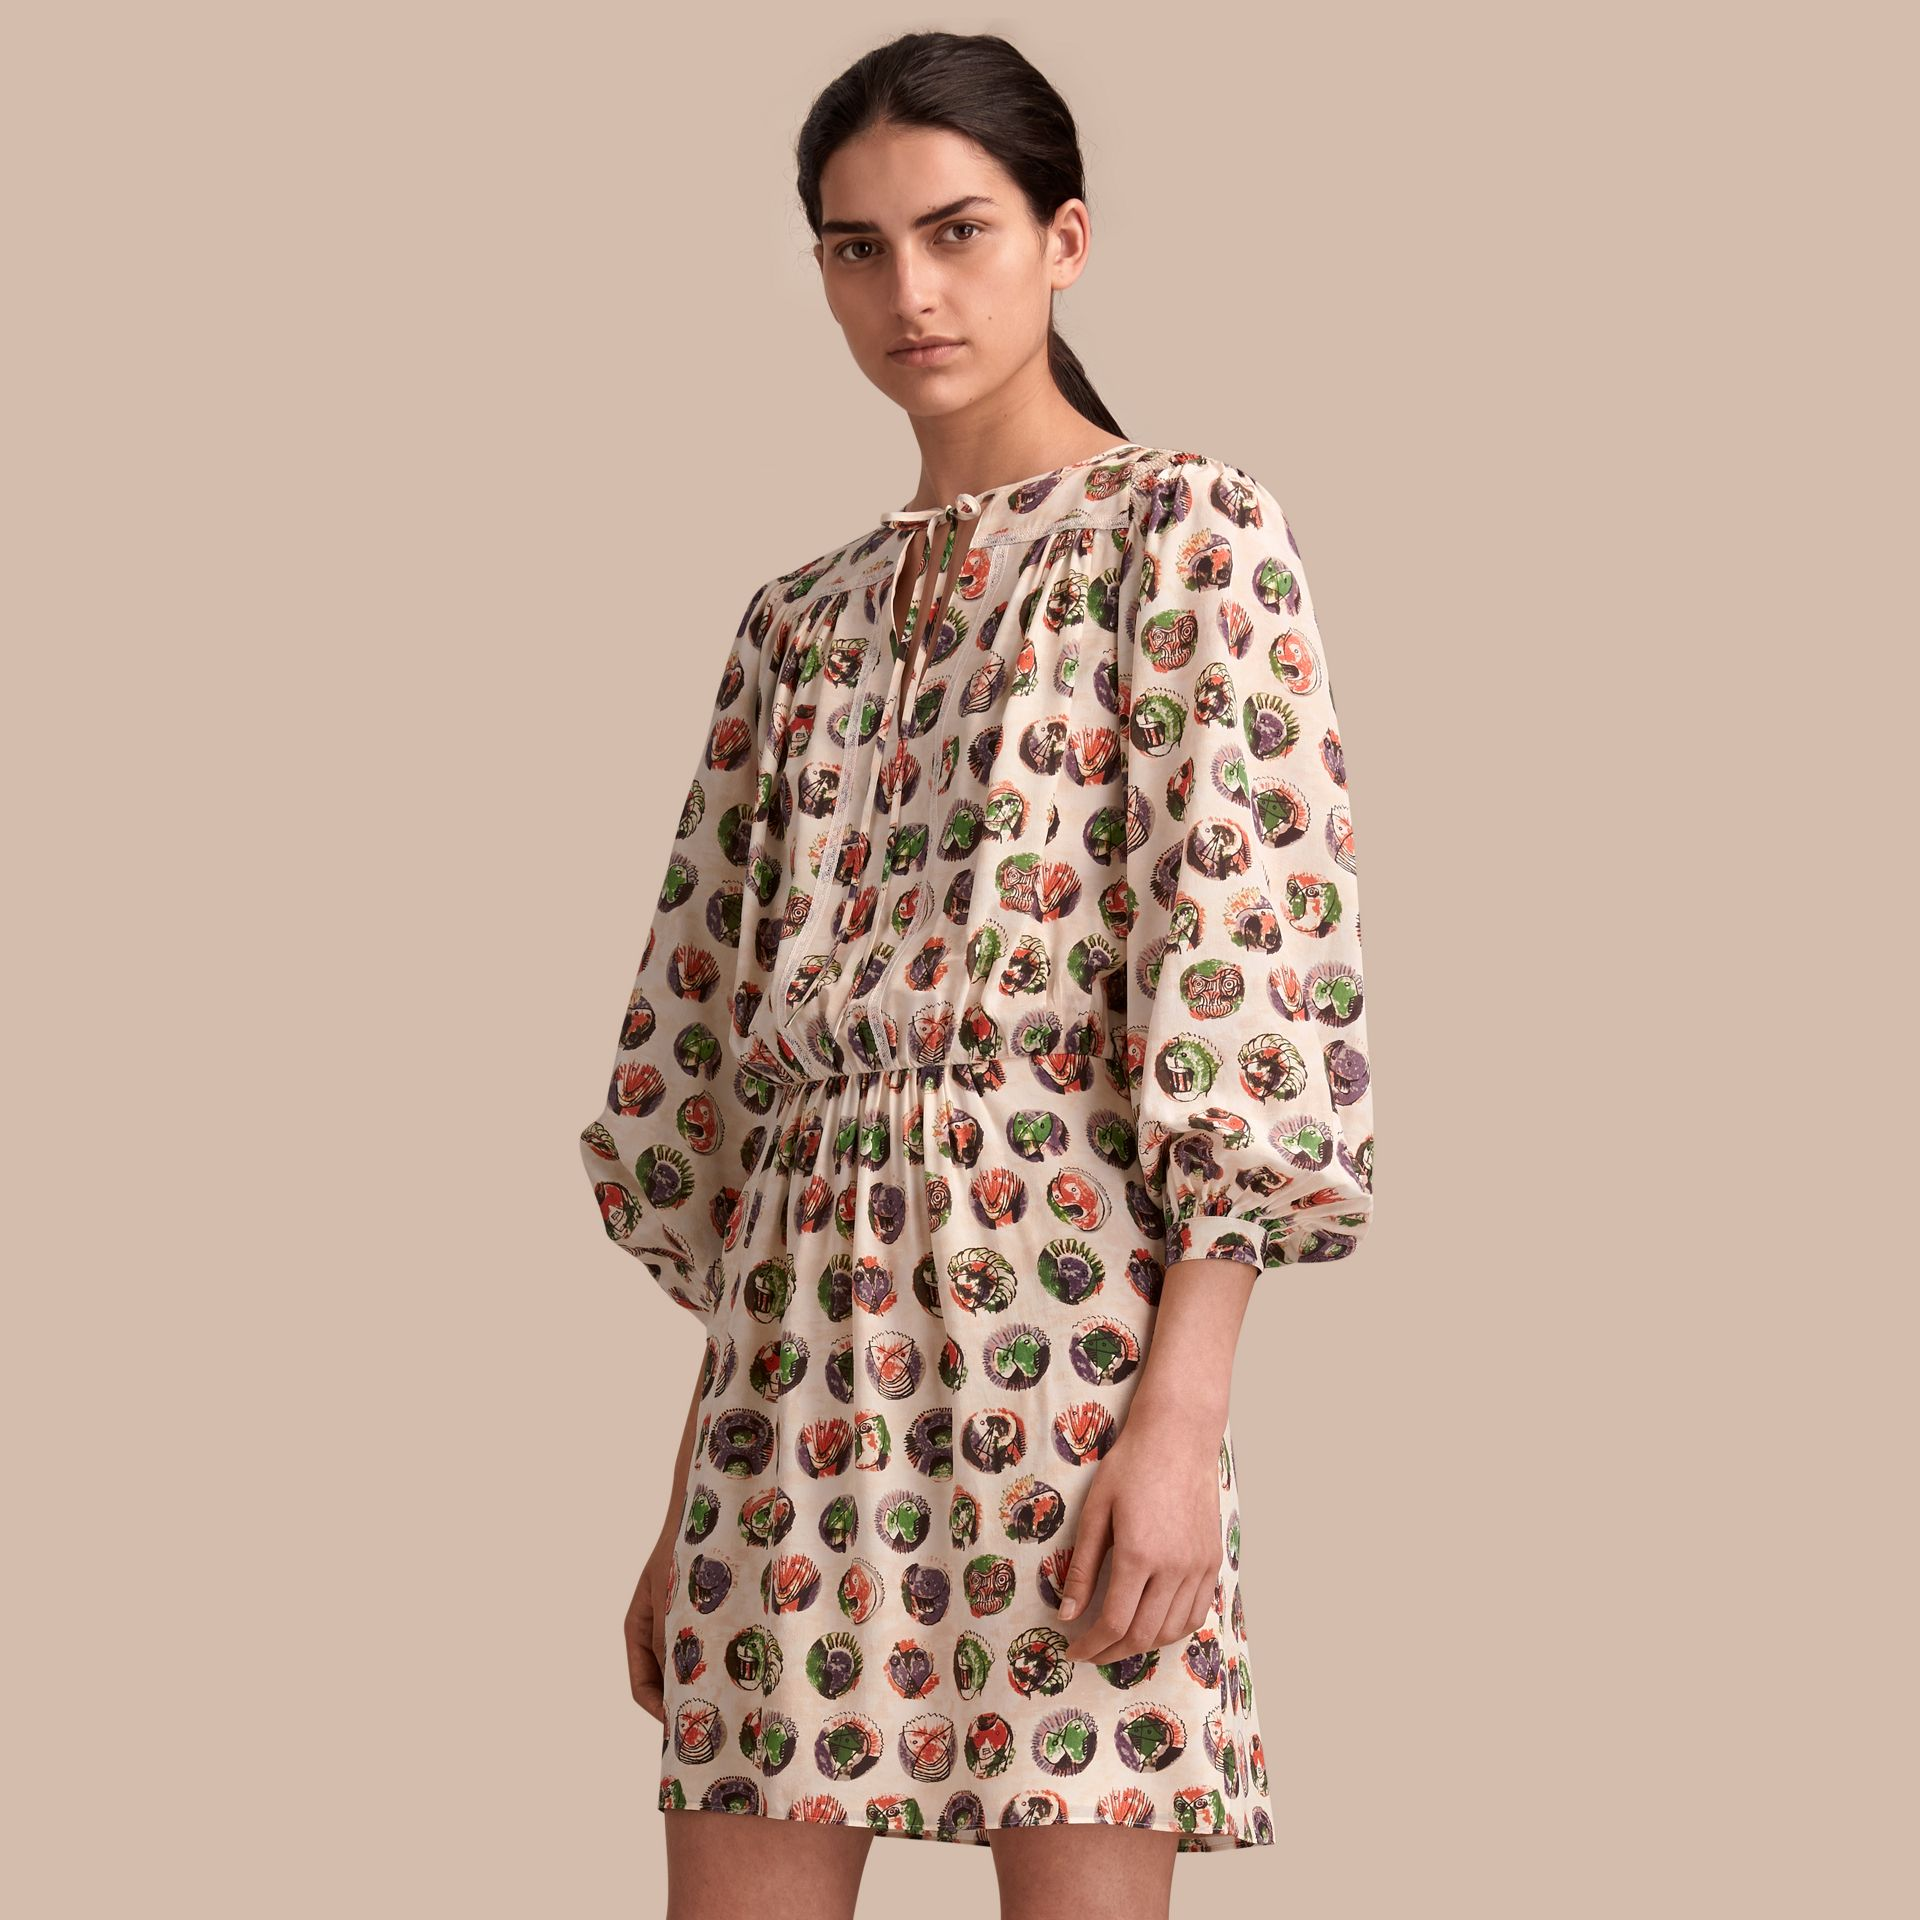 Pallas Heads Print Silk Dress with Neck Tie in Natural White - Women | Burberry - gallery image 1